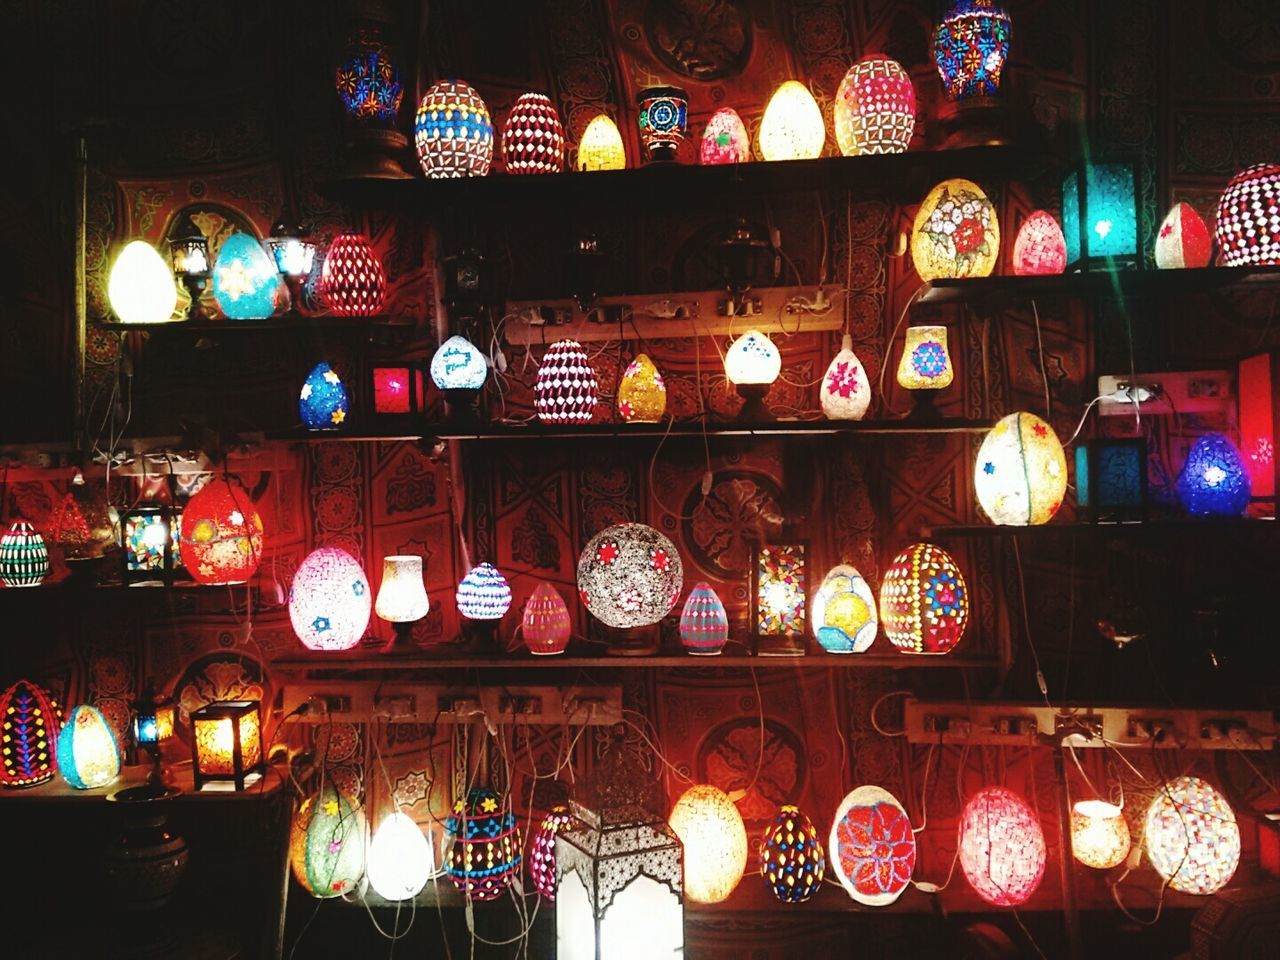 Feel The Journey Khanelkhalili Cairo Egypt Colorful Handmade Lamps Unforgettable Journeys Cairo Downtown Khanelkalili At Night Market the place so mesmerizing, felt like taking home all of these lamps Original Experiences Streetphotography Street Photography Live Love Shop The Beautiful Egypt Colour Of Life My Year My View Beautifully Organized